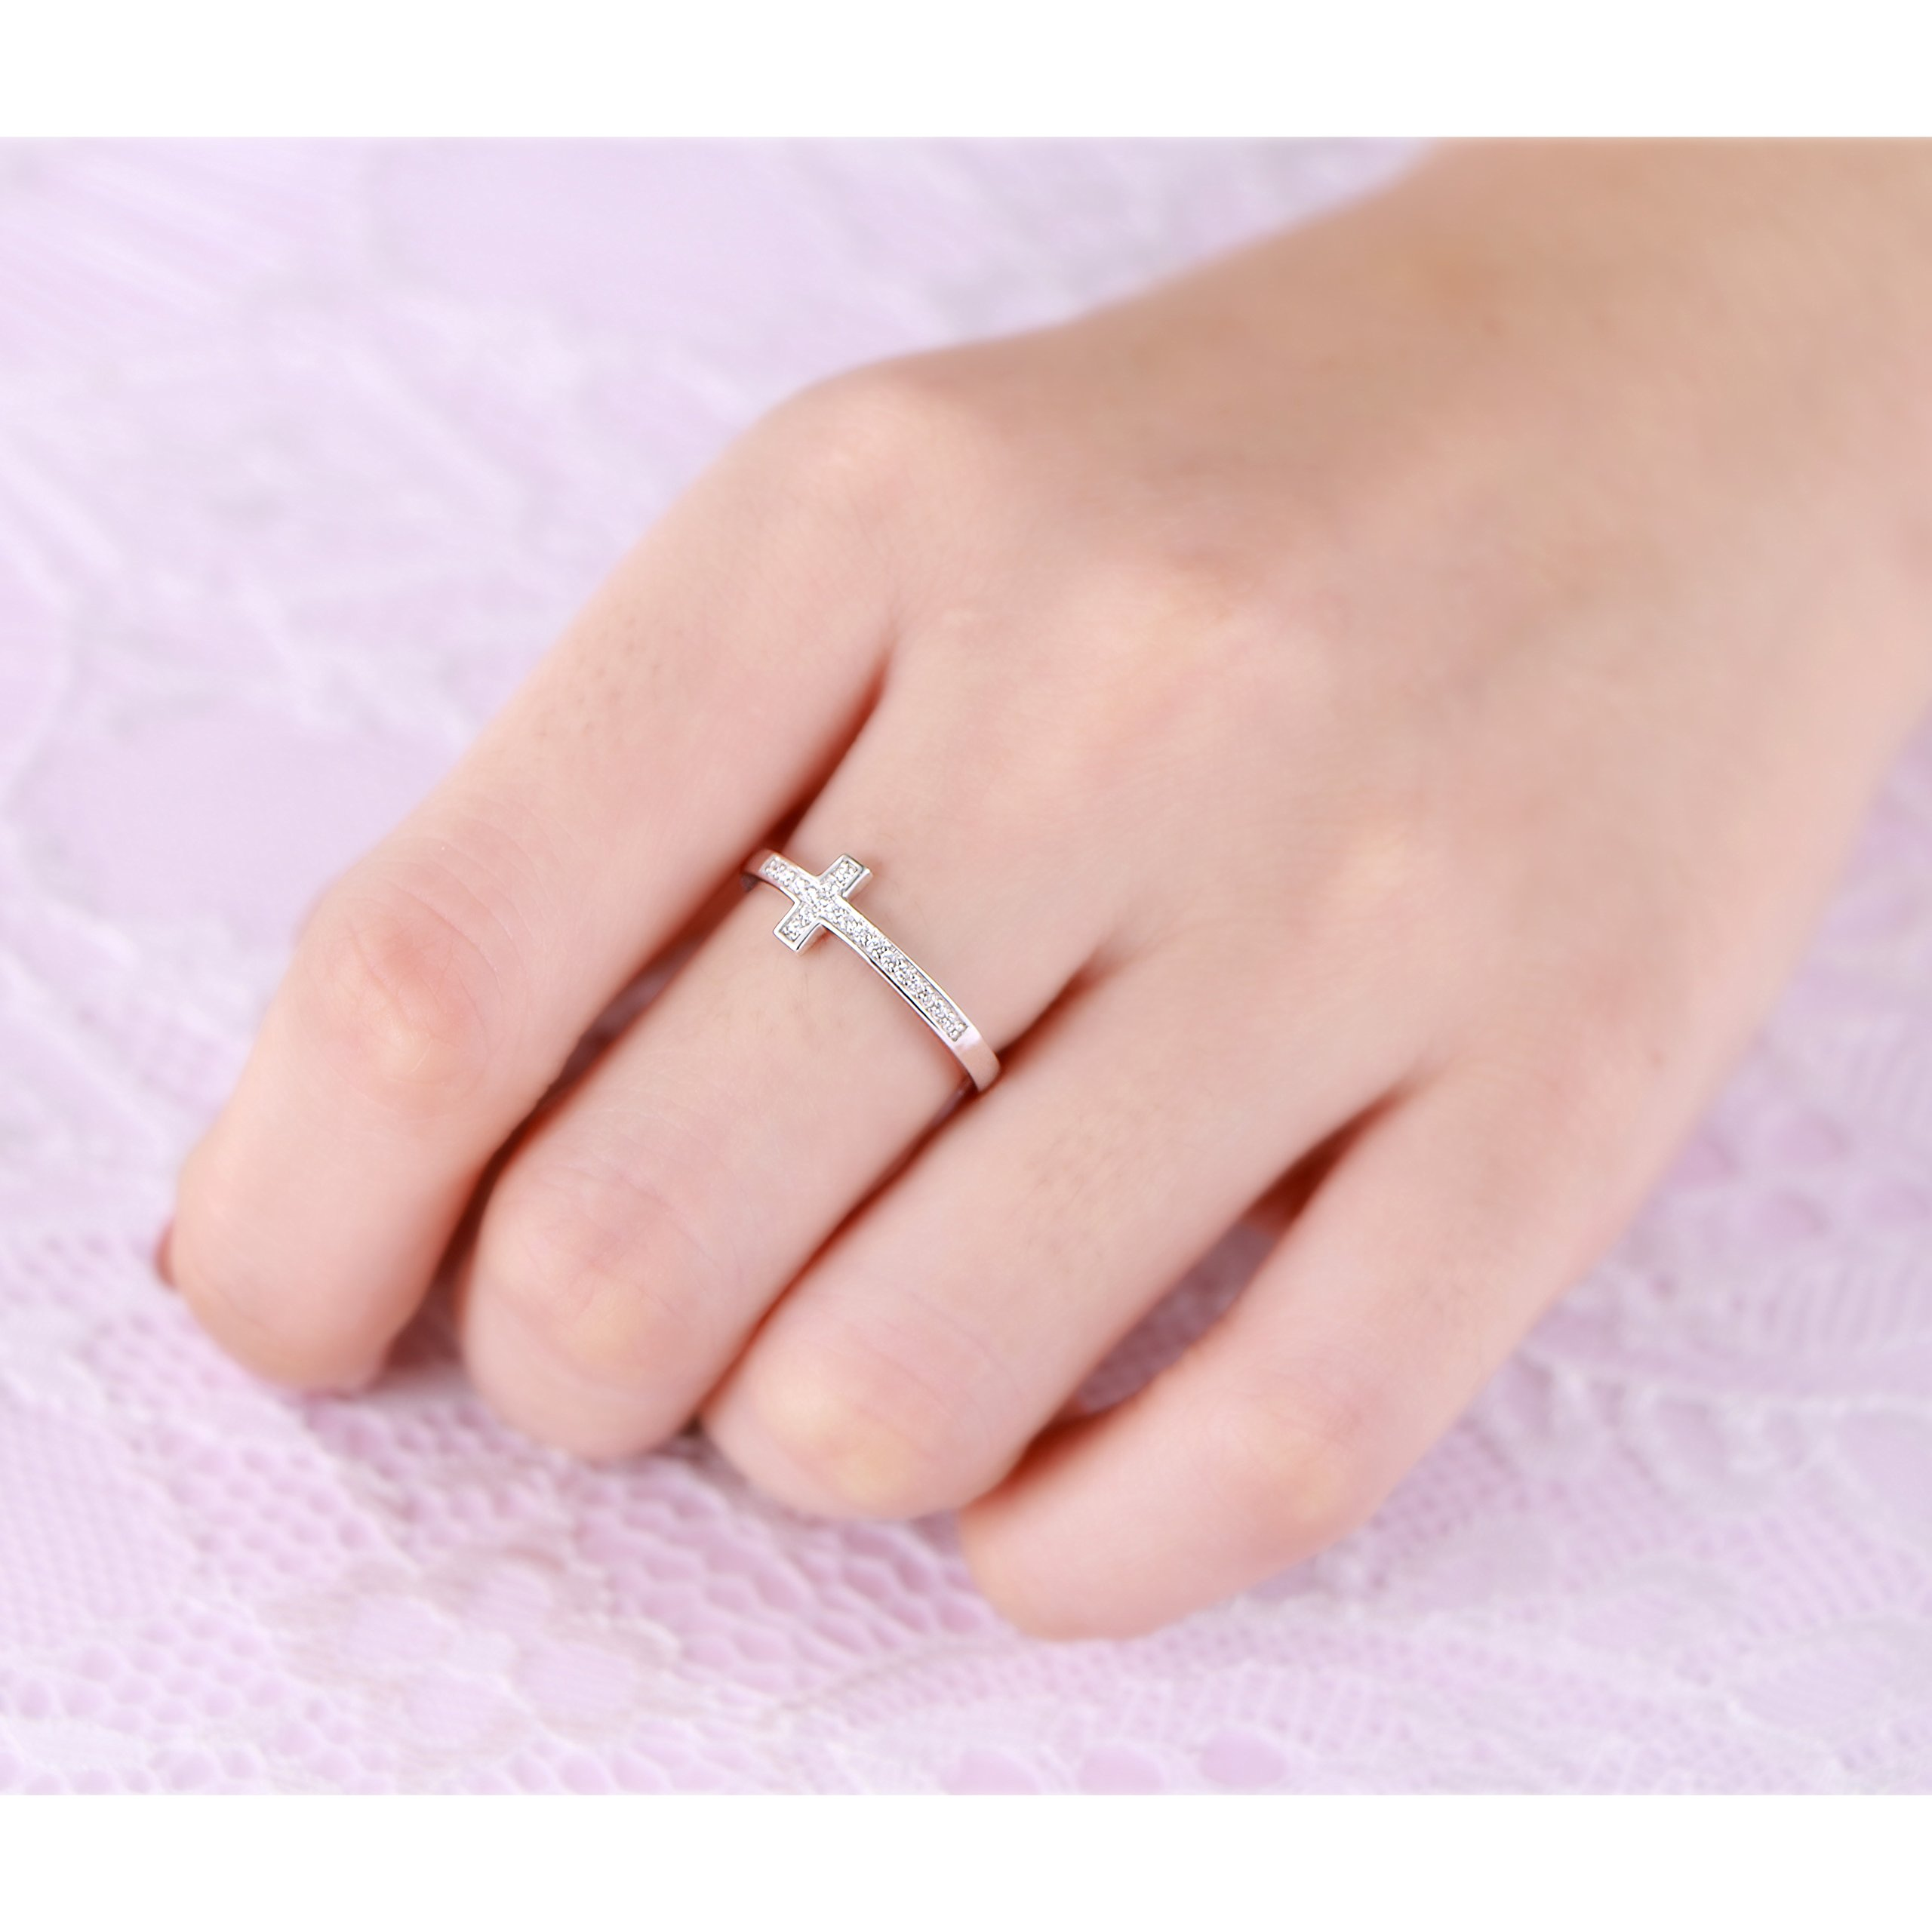 DAOCHONG Inspirational Jewelry Sterling Silver Engraved Faith Hope Love Sideway Cross Ring, Size 6 7 8 (8) by DAOCHONG (Image #2)